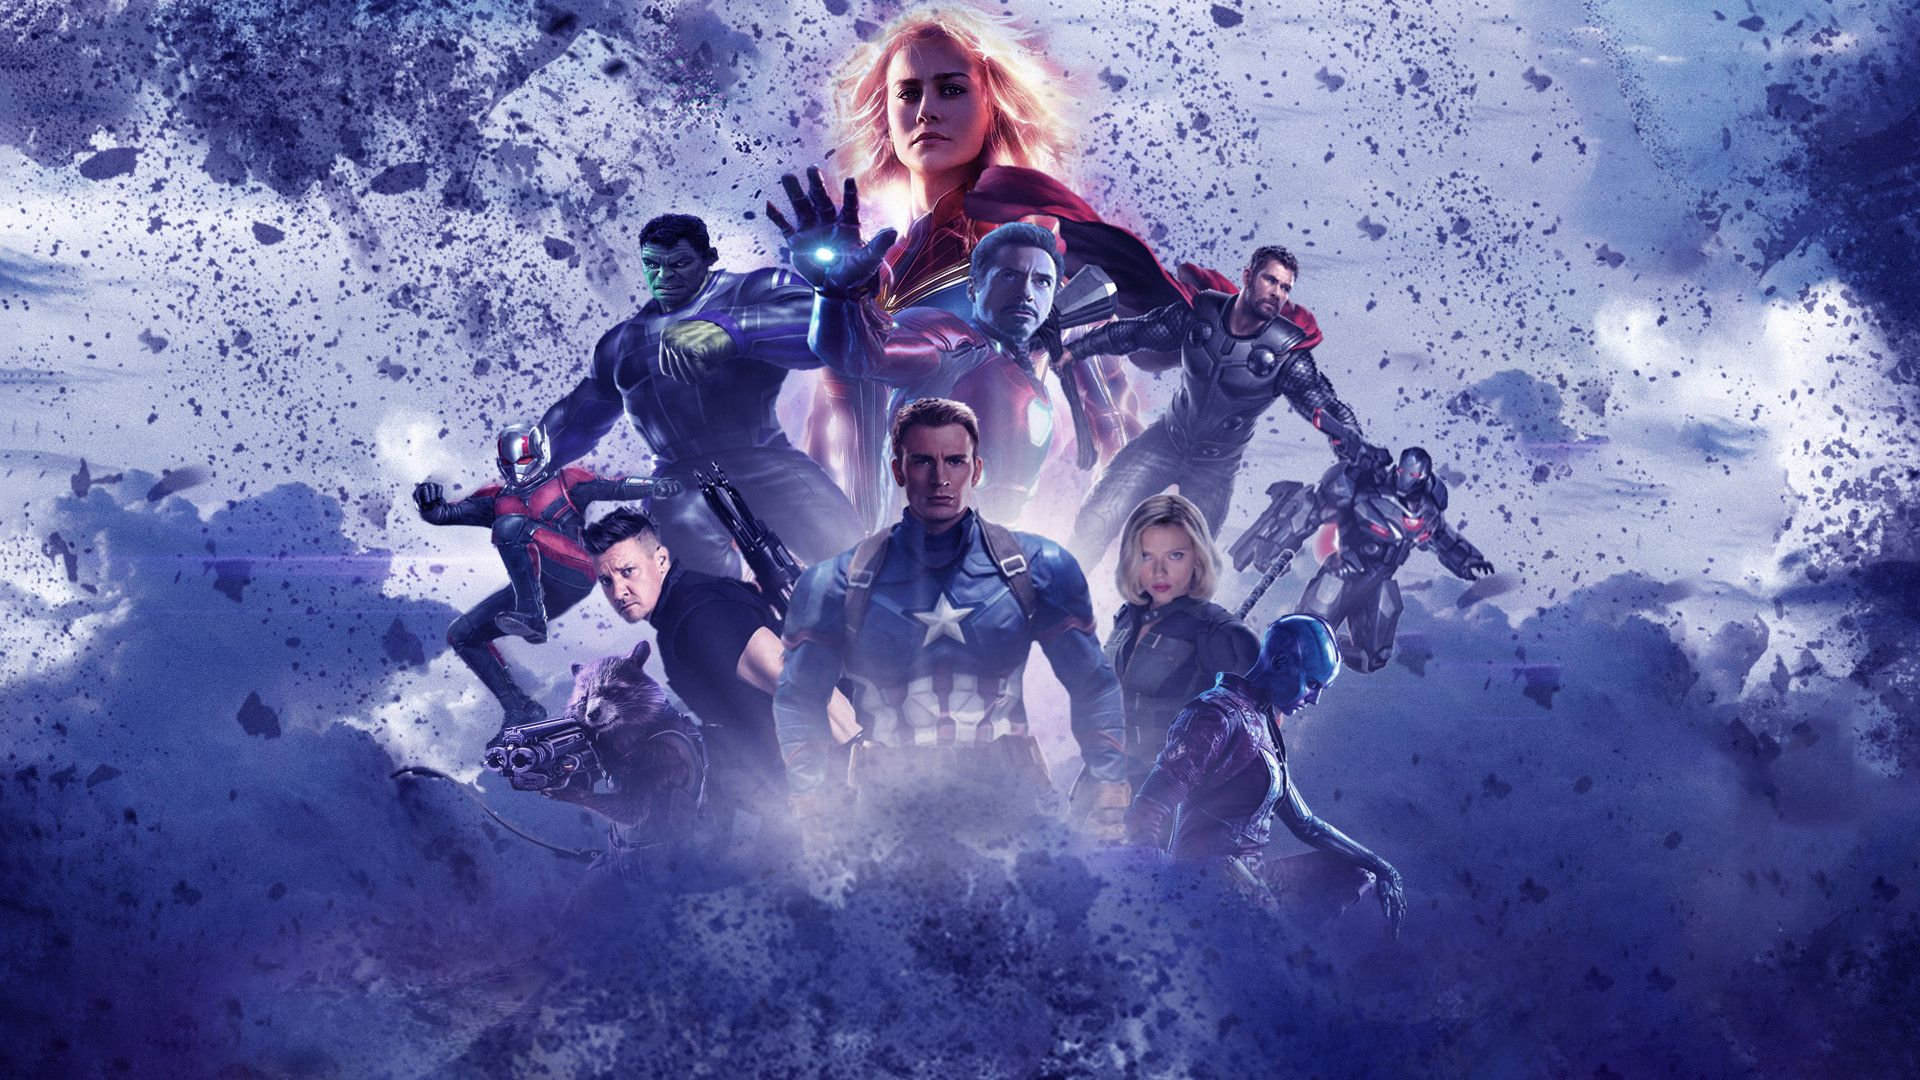 Beautiful Avengers Endgame Hd Wallpaper Background Image Marvel Wallpaper Avengers Wallpaper Marvel Images